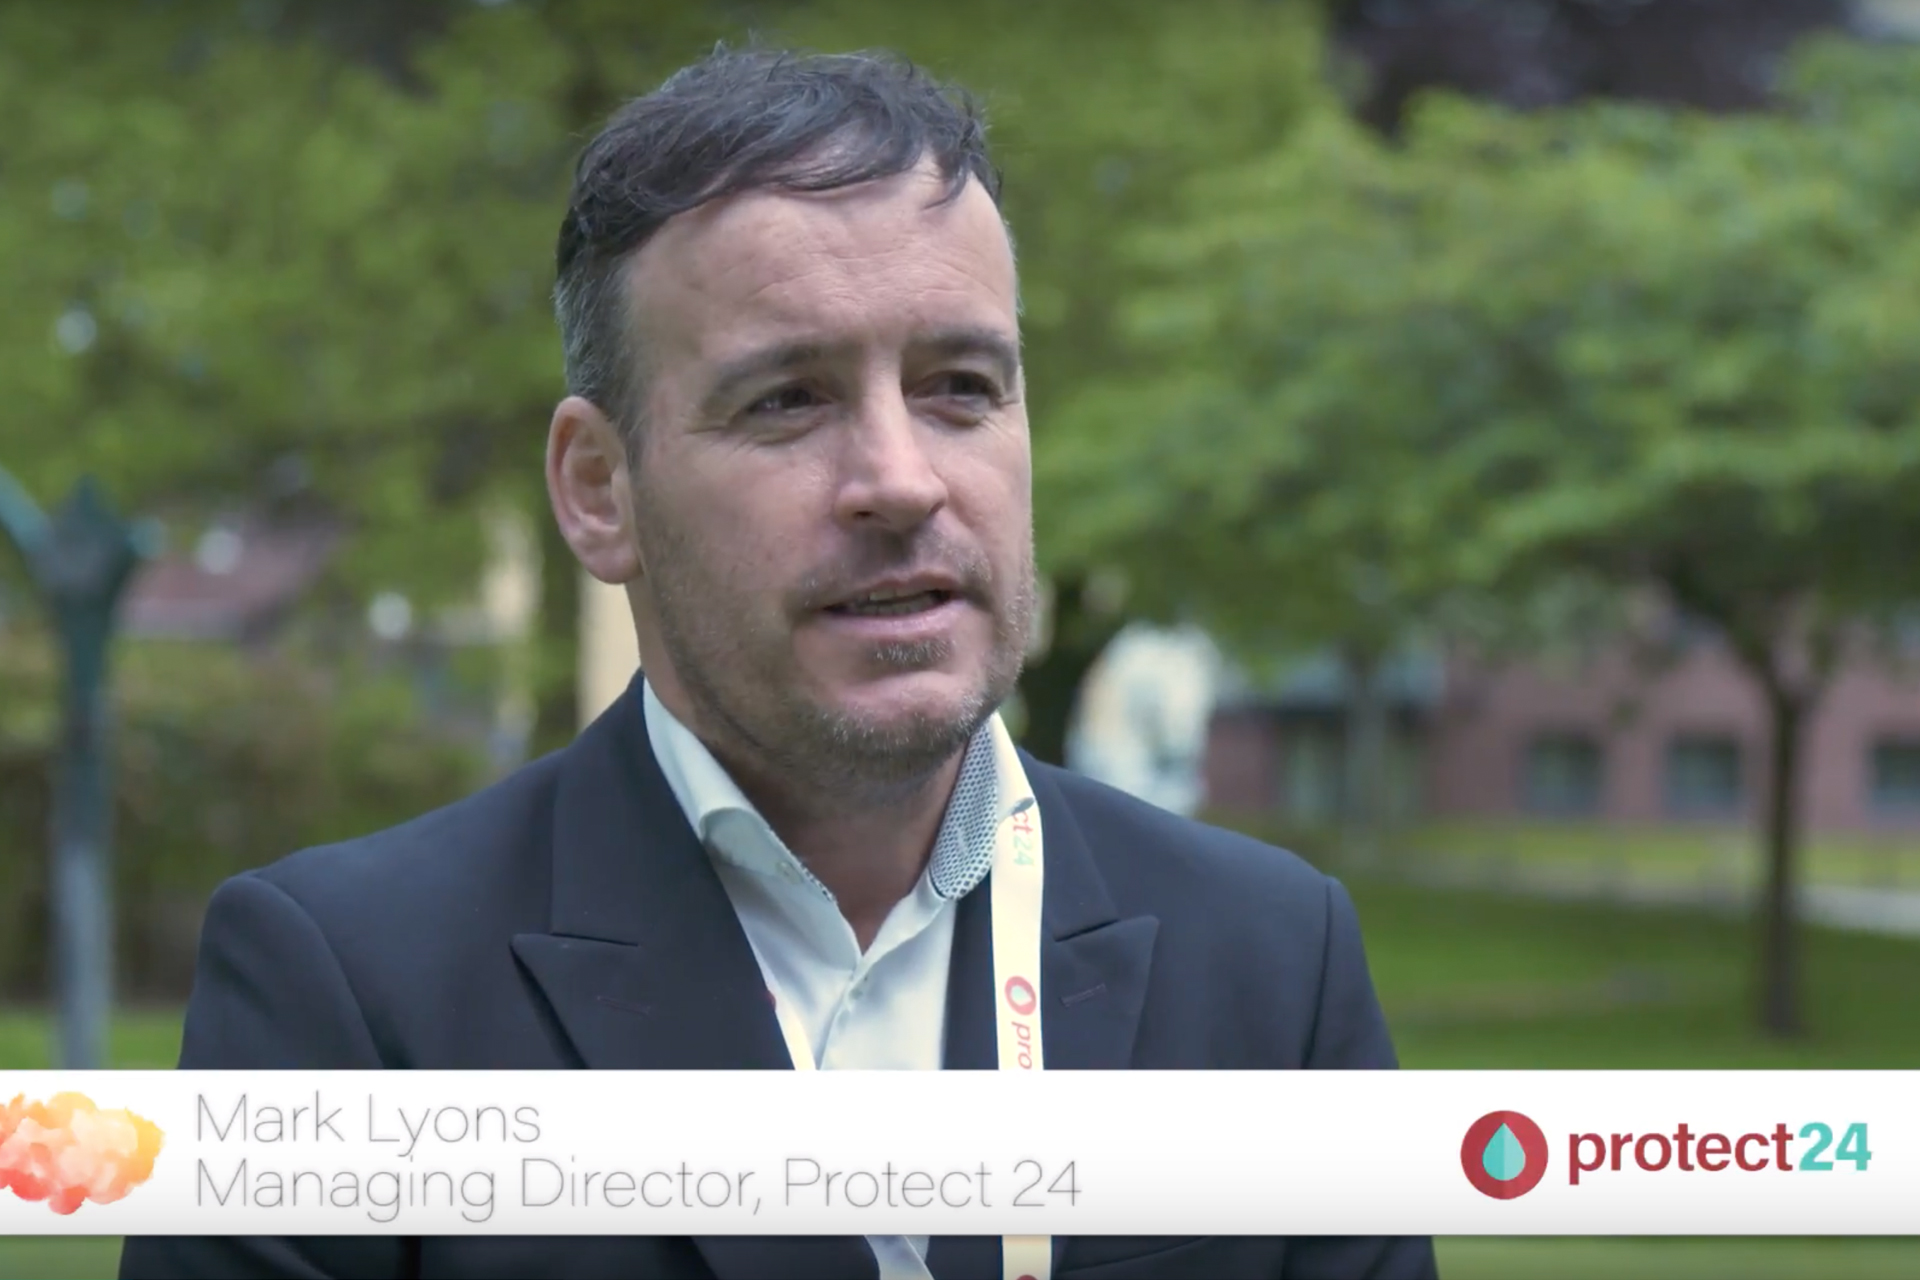 Onside PR Create Protect24 Promotional Video